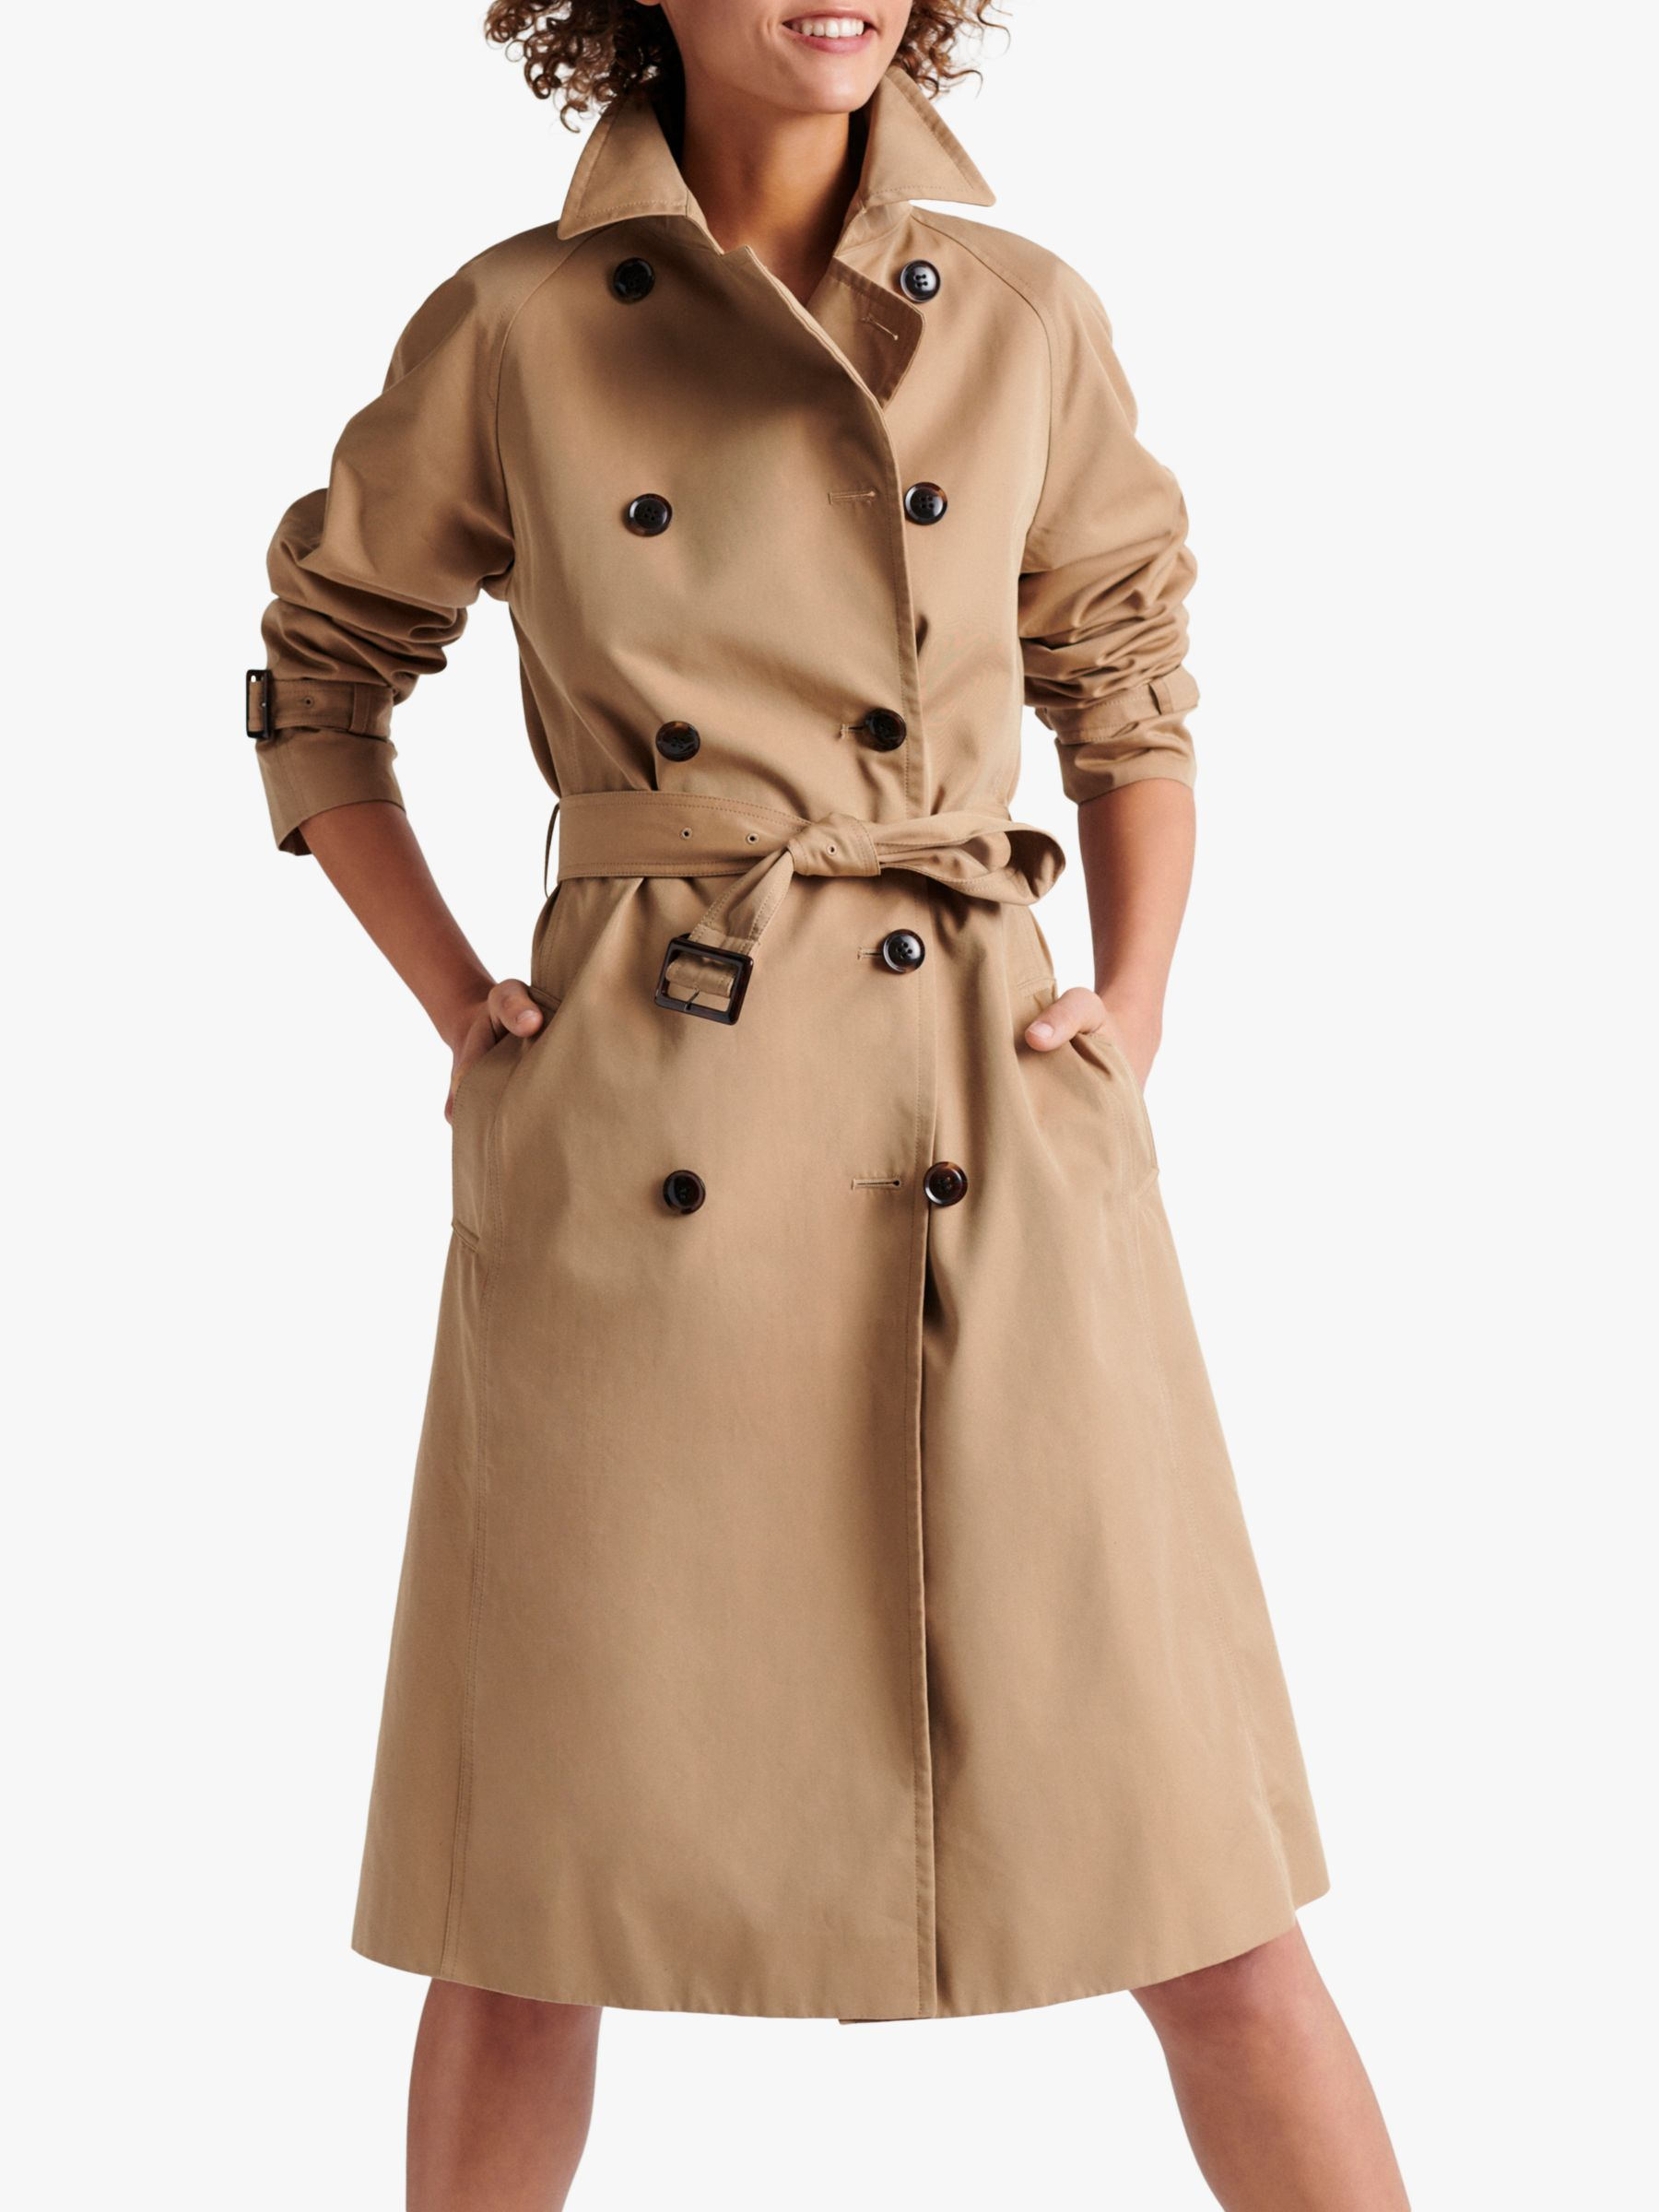 Gerard Darel Domenica Double Breasted Trench Coat, Camel, 6